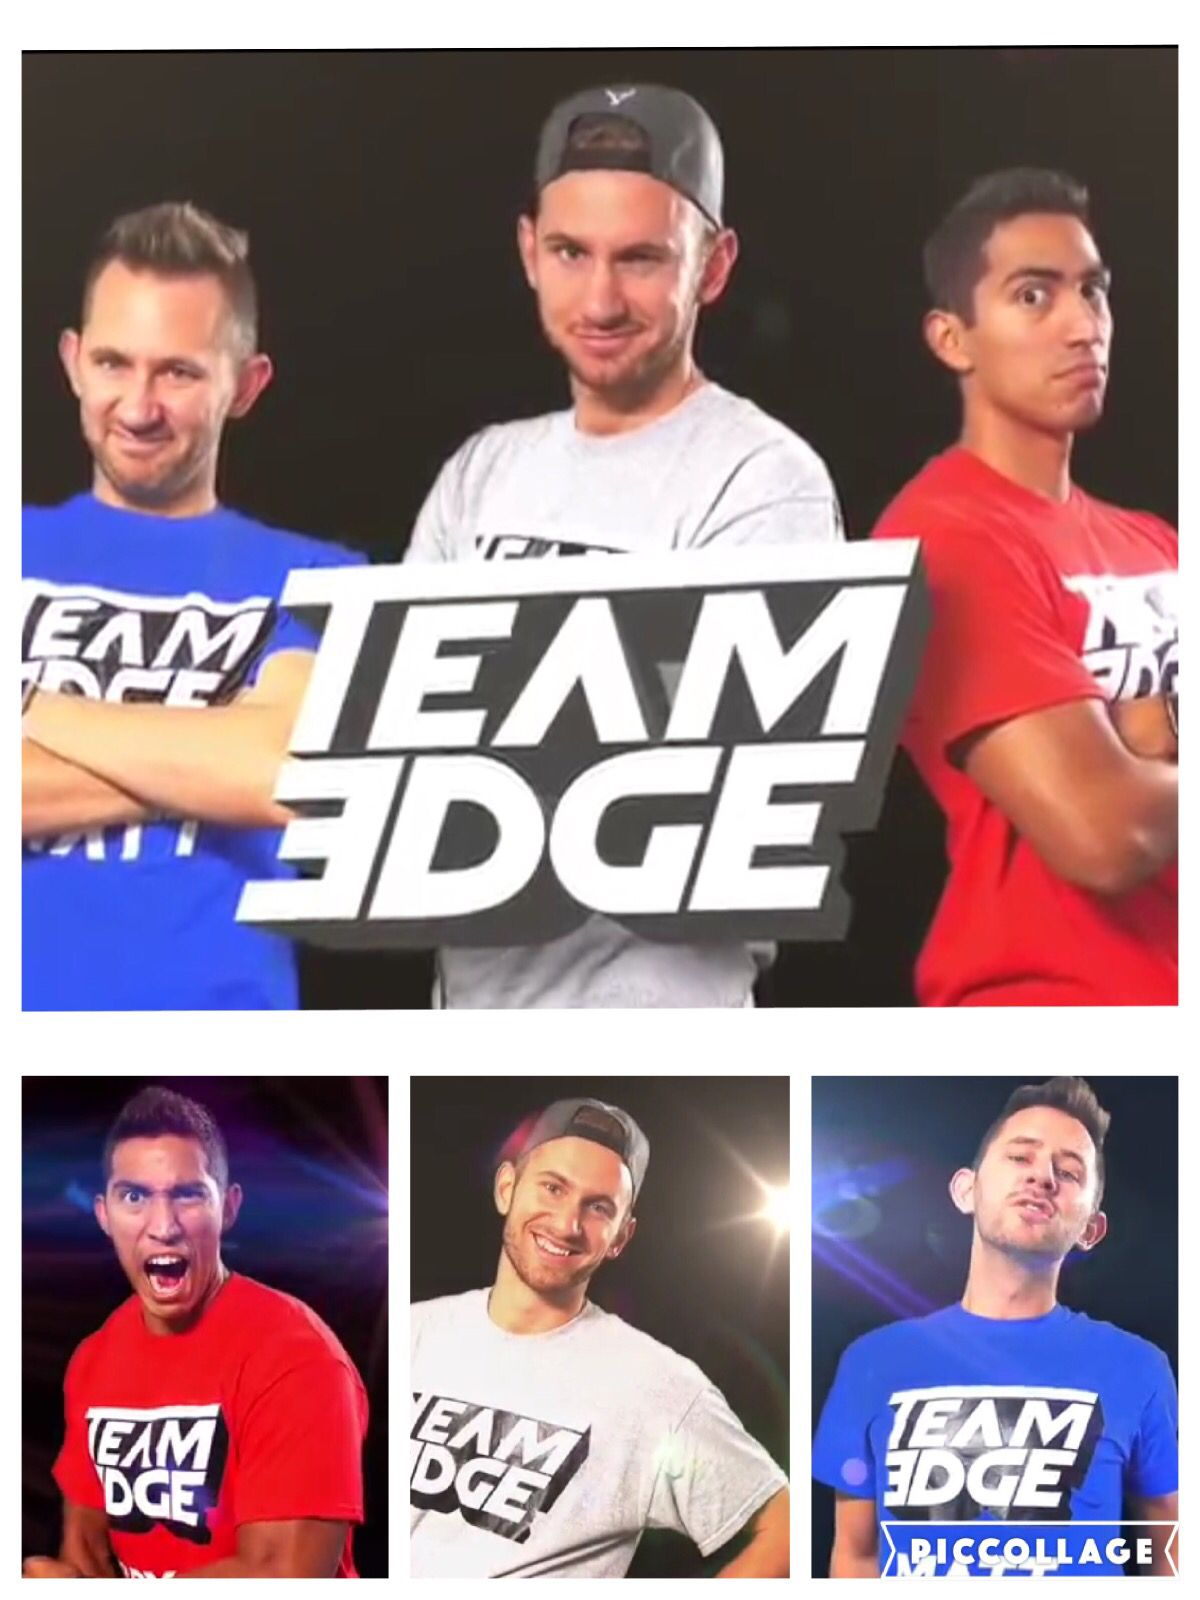 8dfed1f1bc0 Team Edge on YouTube! I love their channel